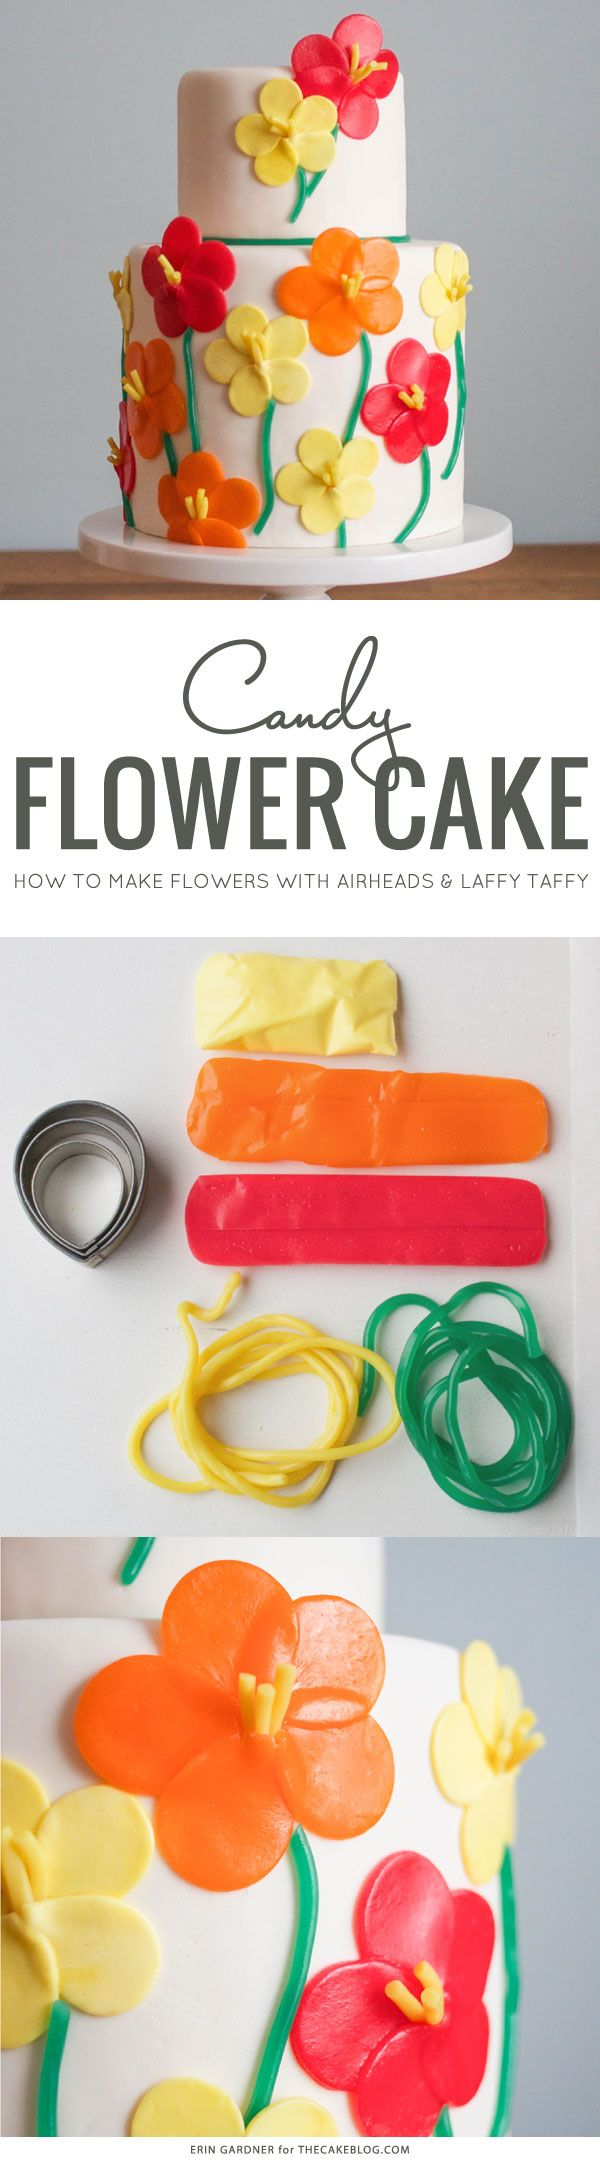 Chewy Candy Flower Cake